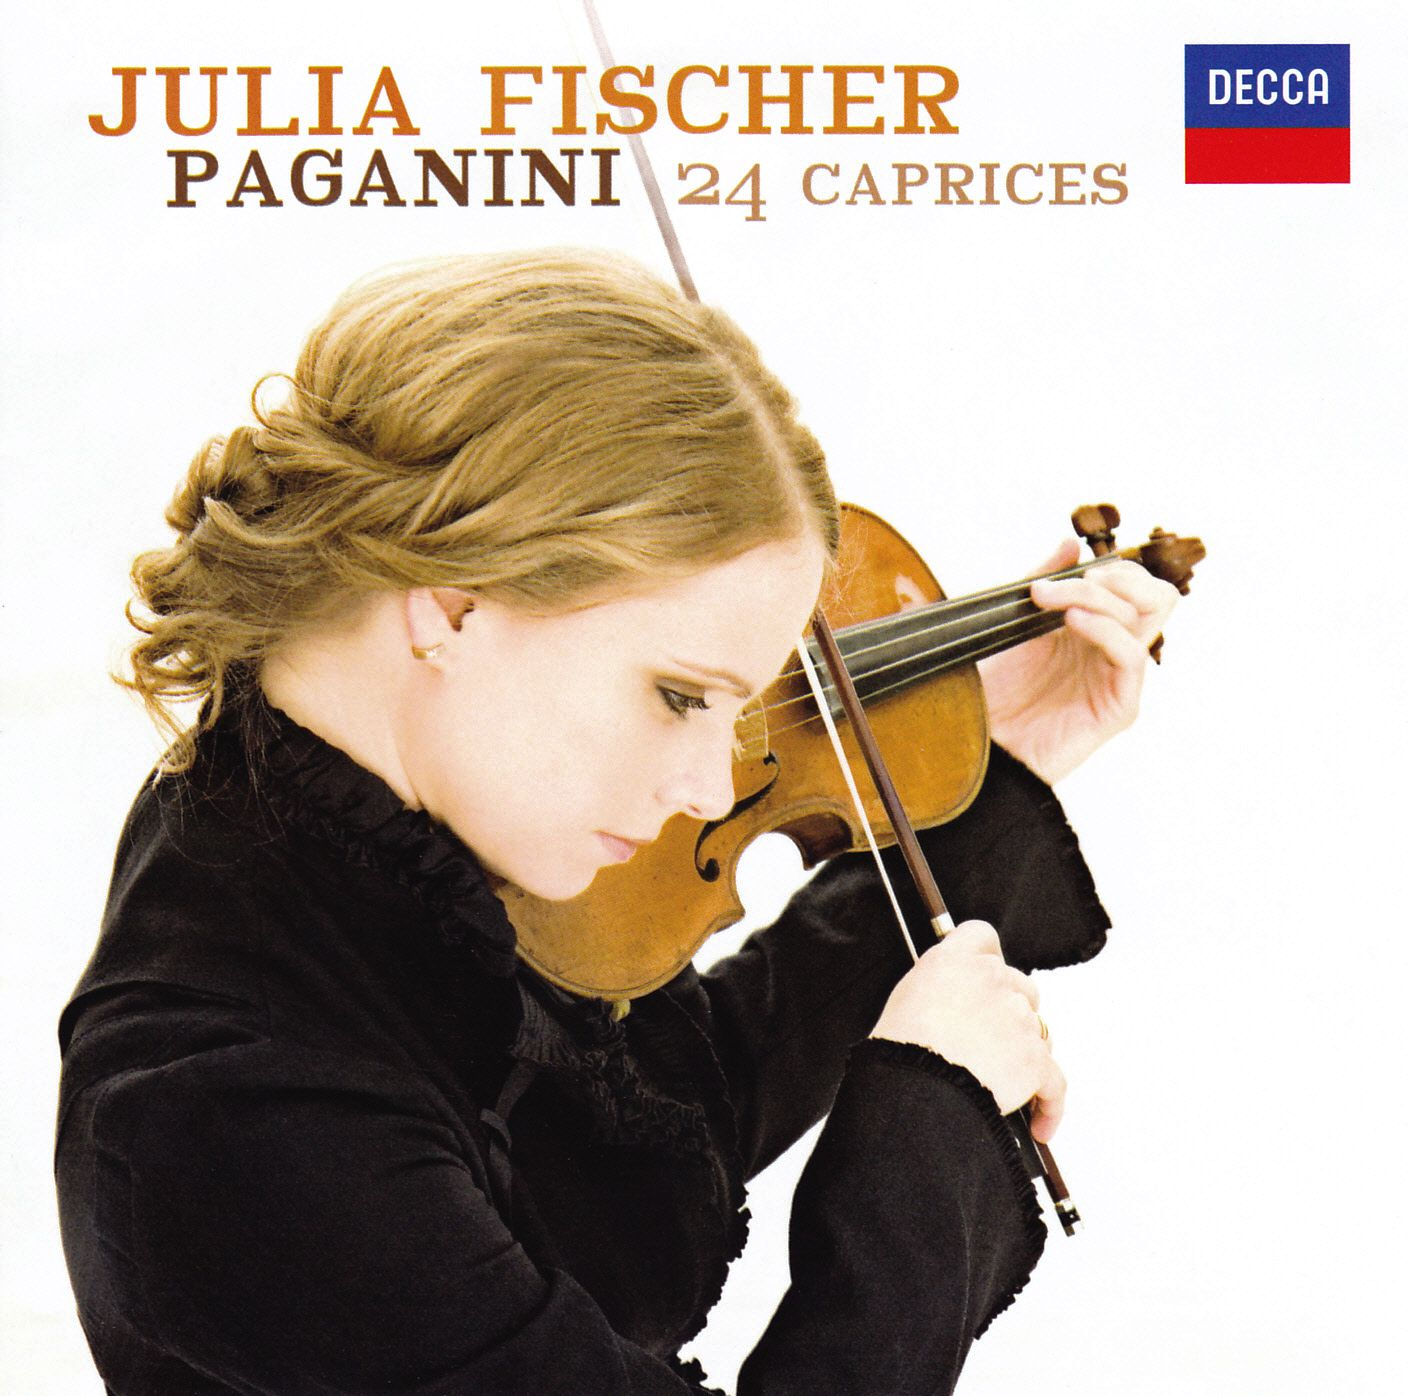 paganini 24 caprices by julia fischer music charts. Black Bedroom Furniture Sets. Home Design Ideas